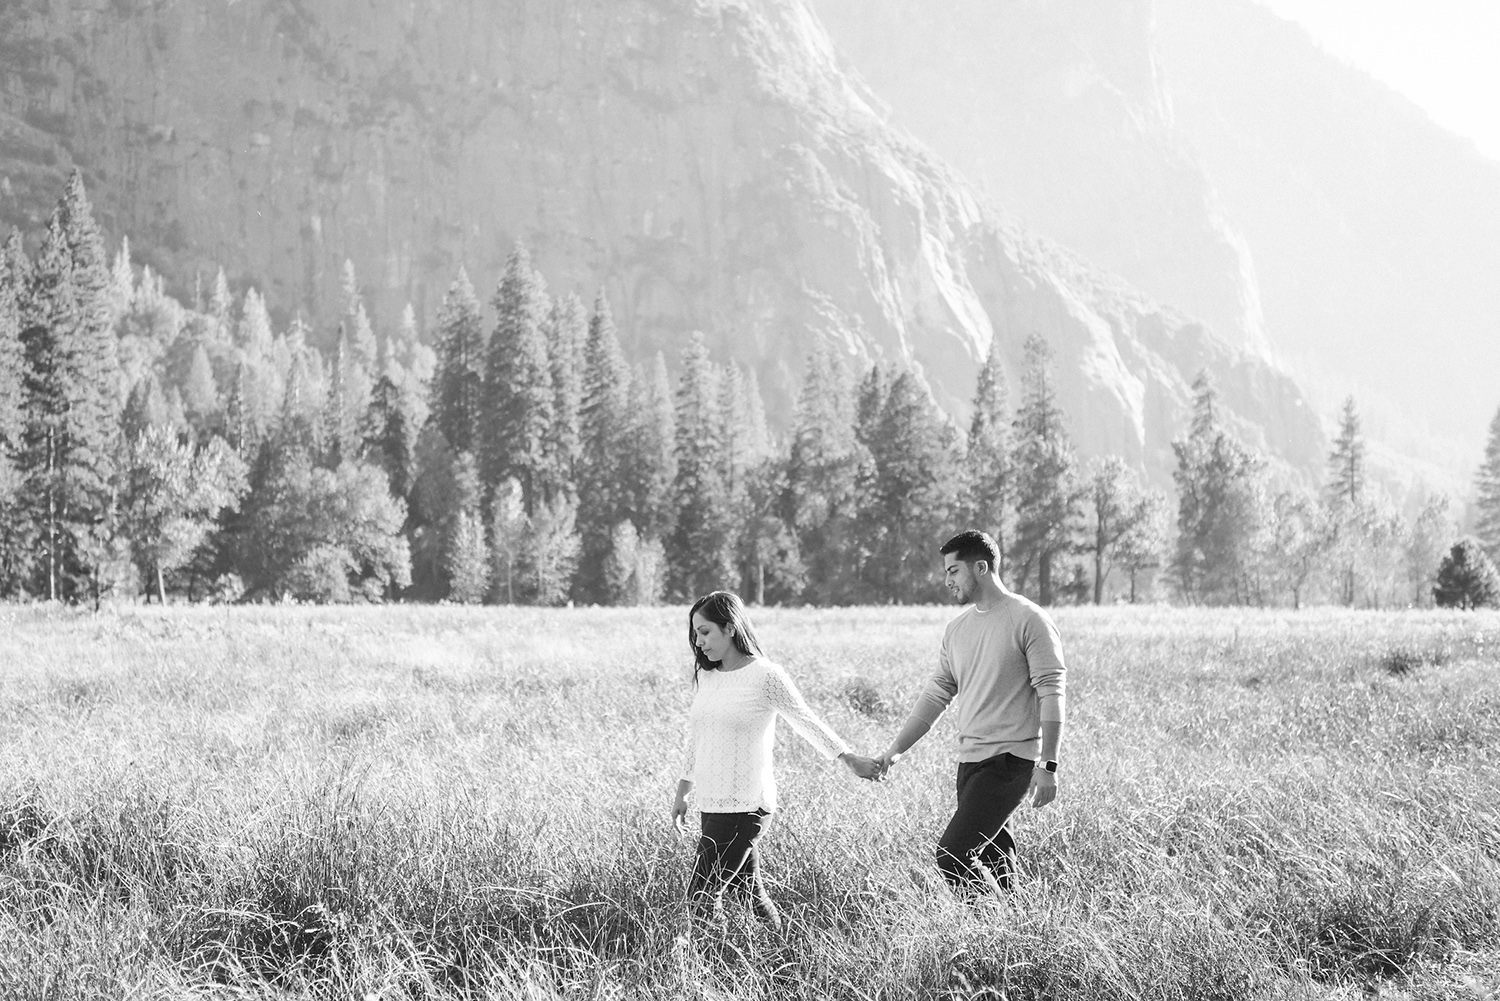 Our engagement session in Yosemite National Park, CA